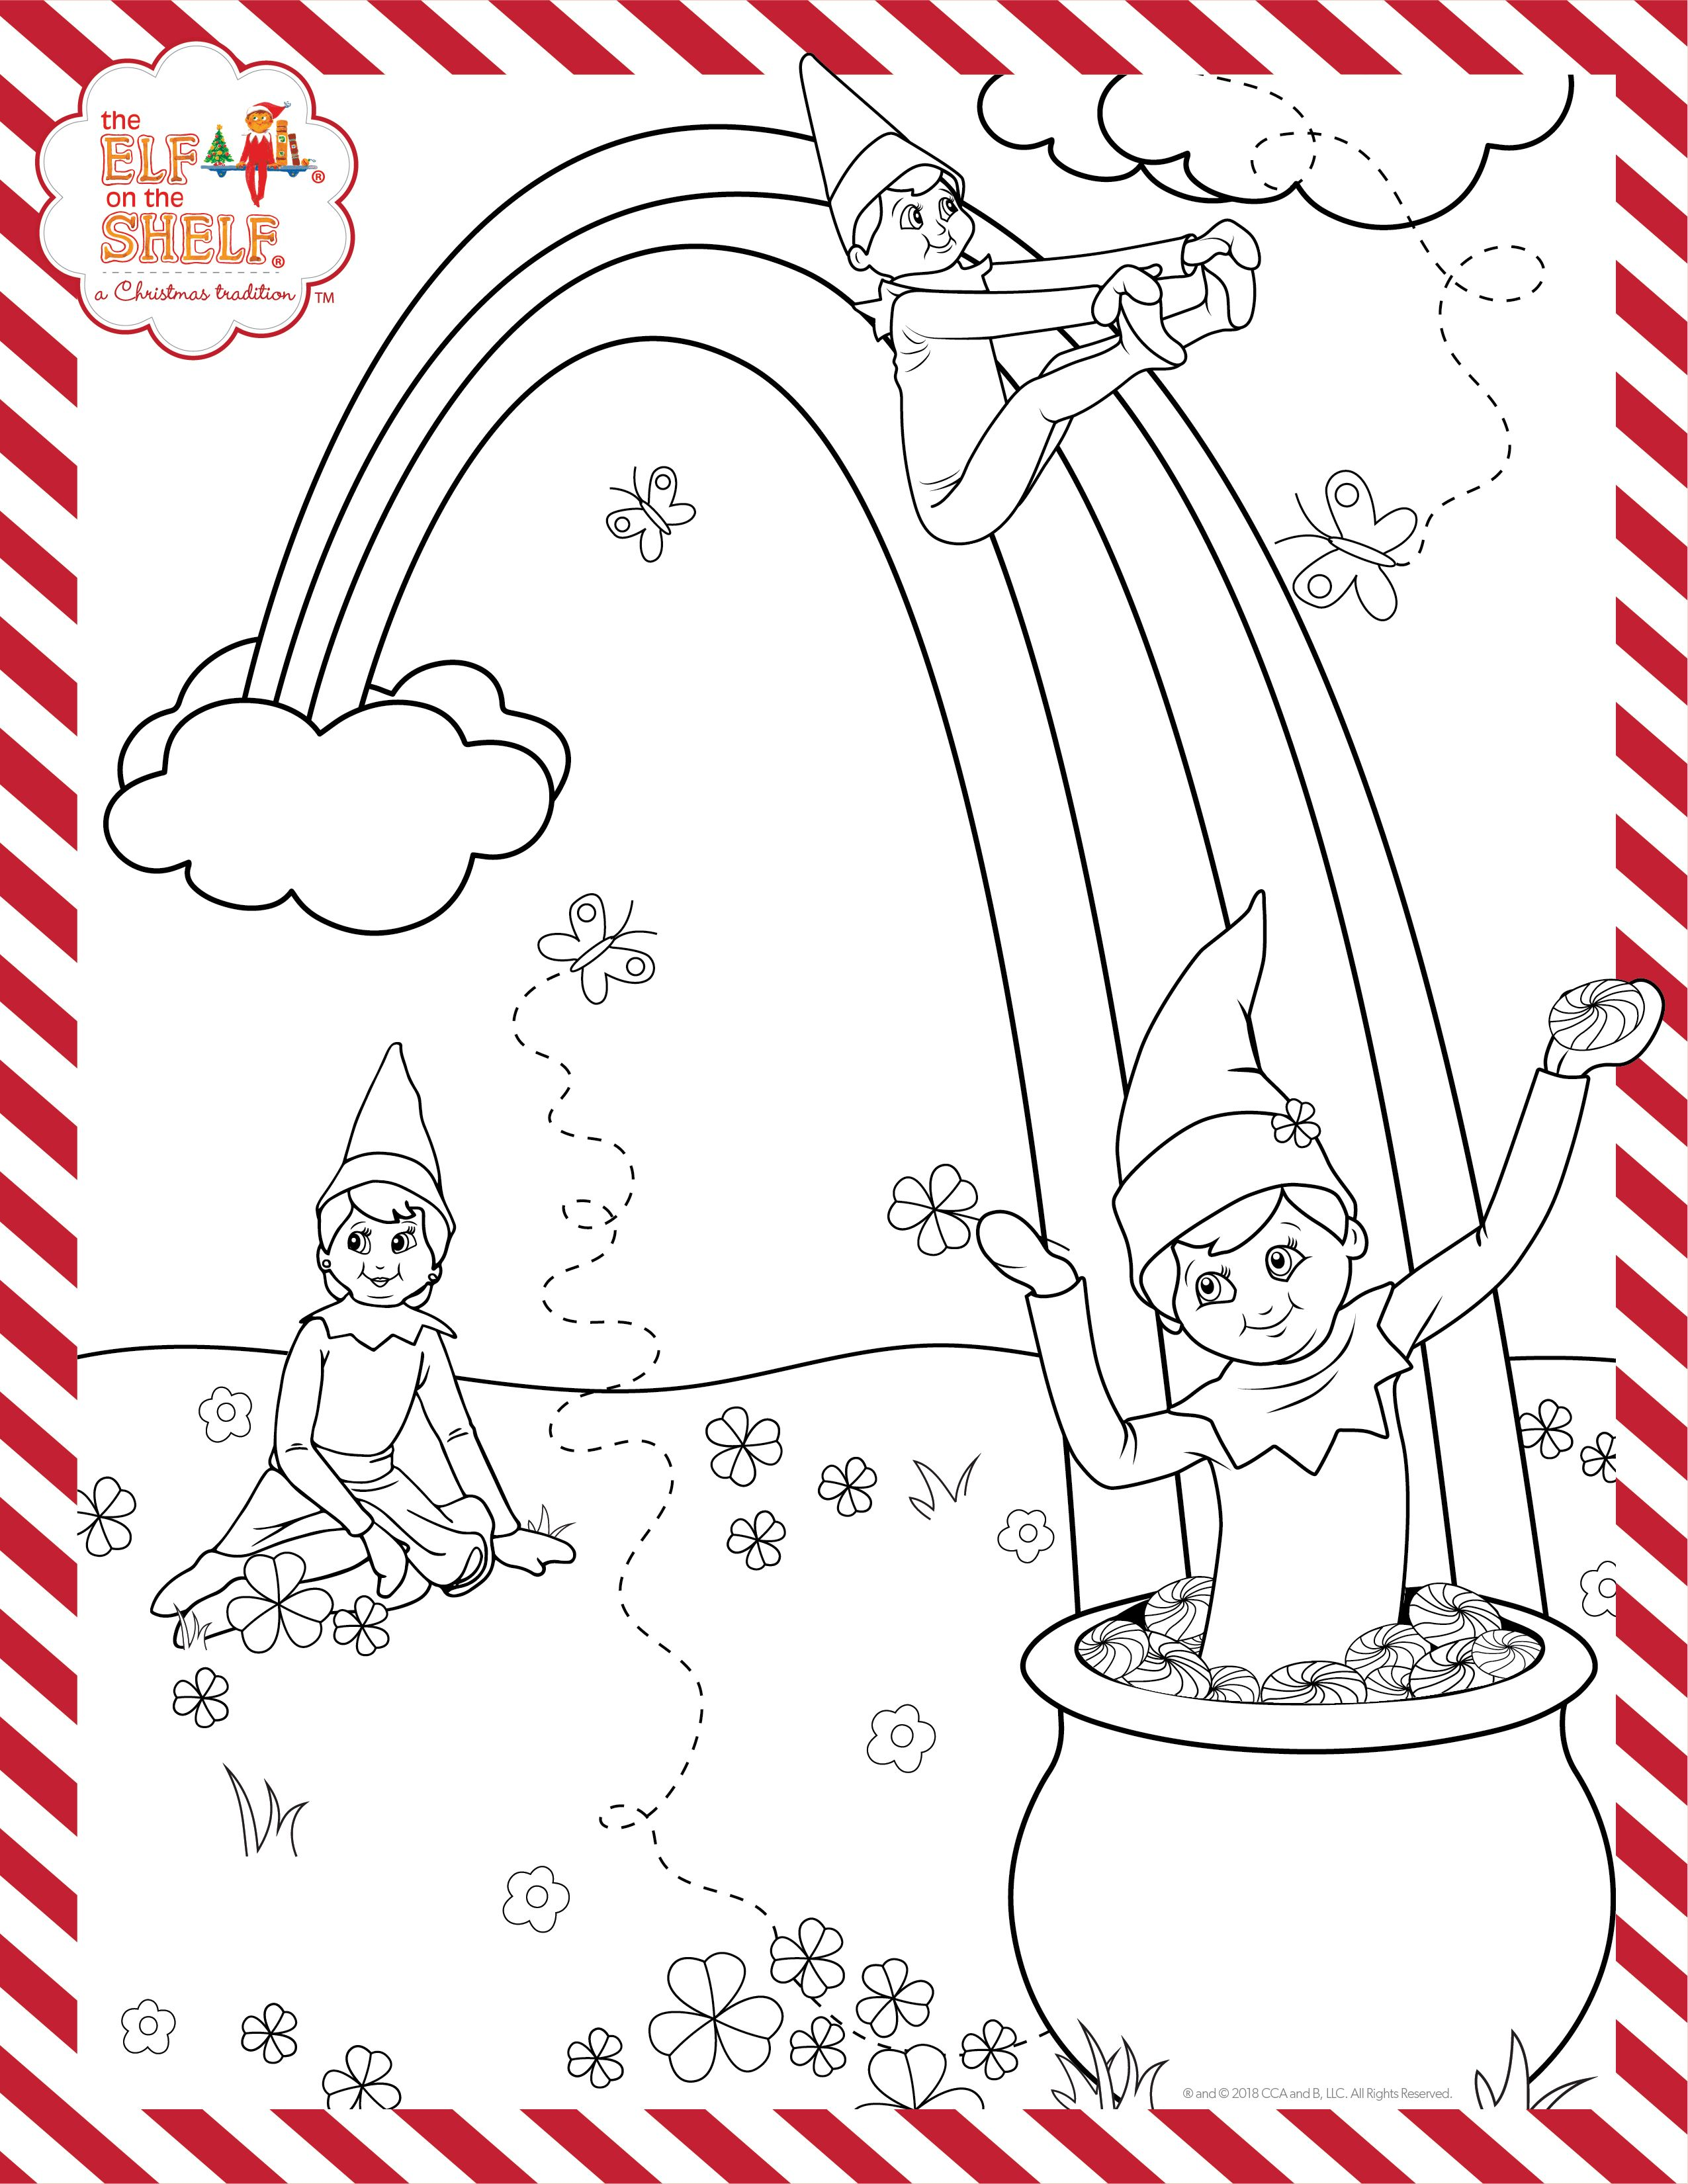 St Patrick S Day Printable Kids Coloring Pages Activities For Kids Elf On The Shelf Ideas Elf Activities Christmas Coloring Pages Elf On The Shelf